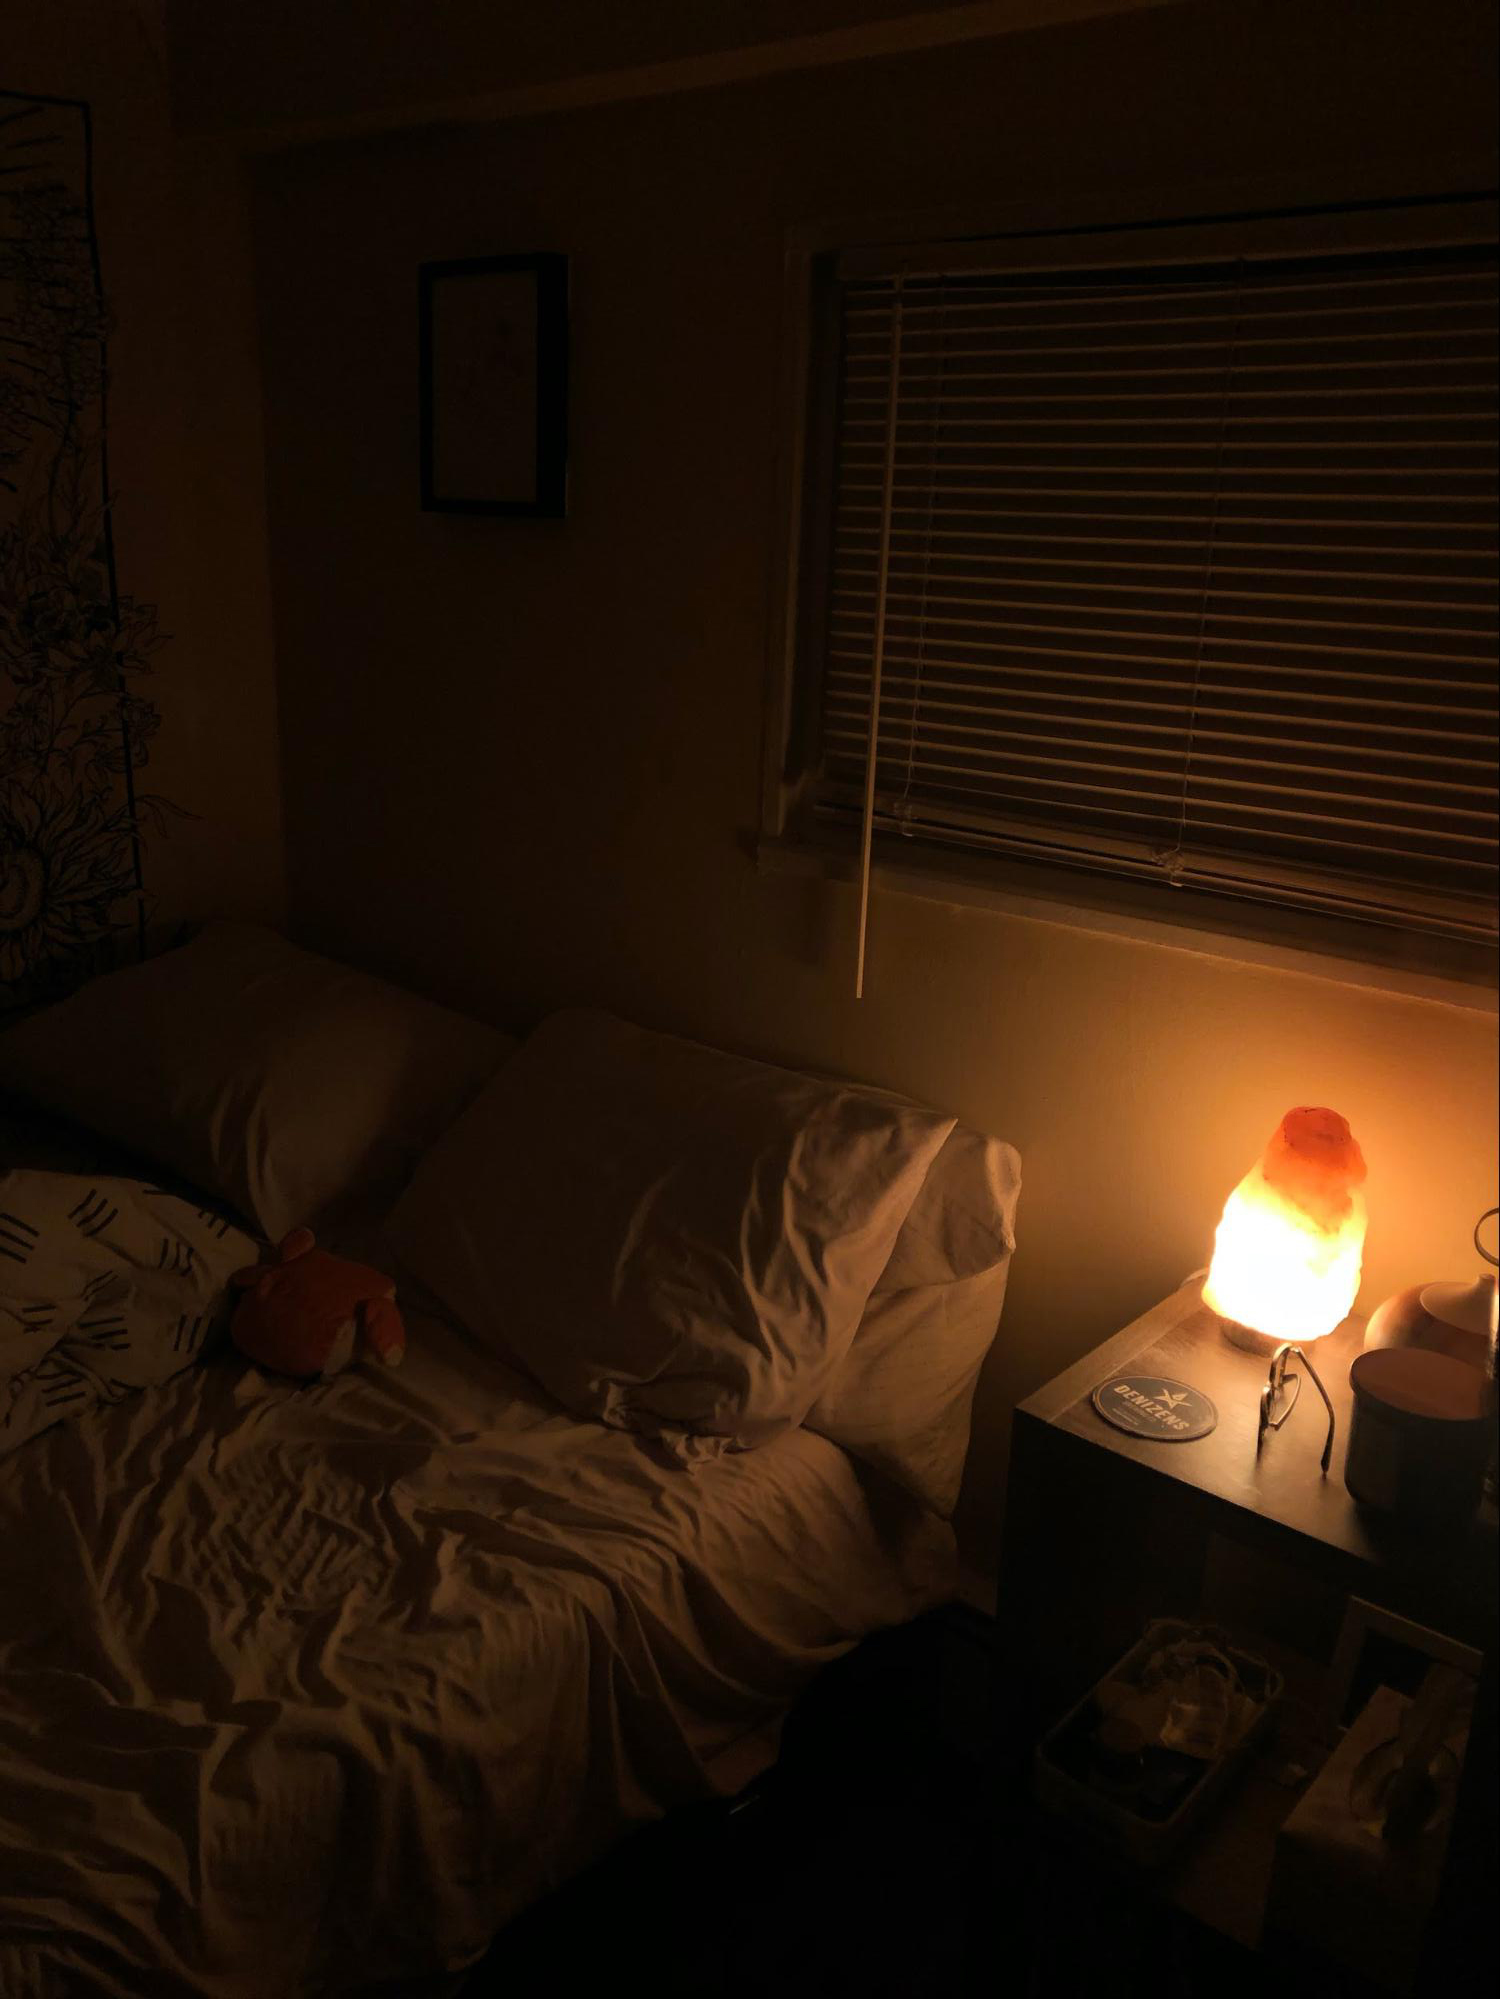 A salt lamp on the night stand dimly lights the dark bedroom and an essential oil diffuser is plugged in on the night stand.